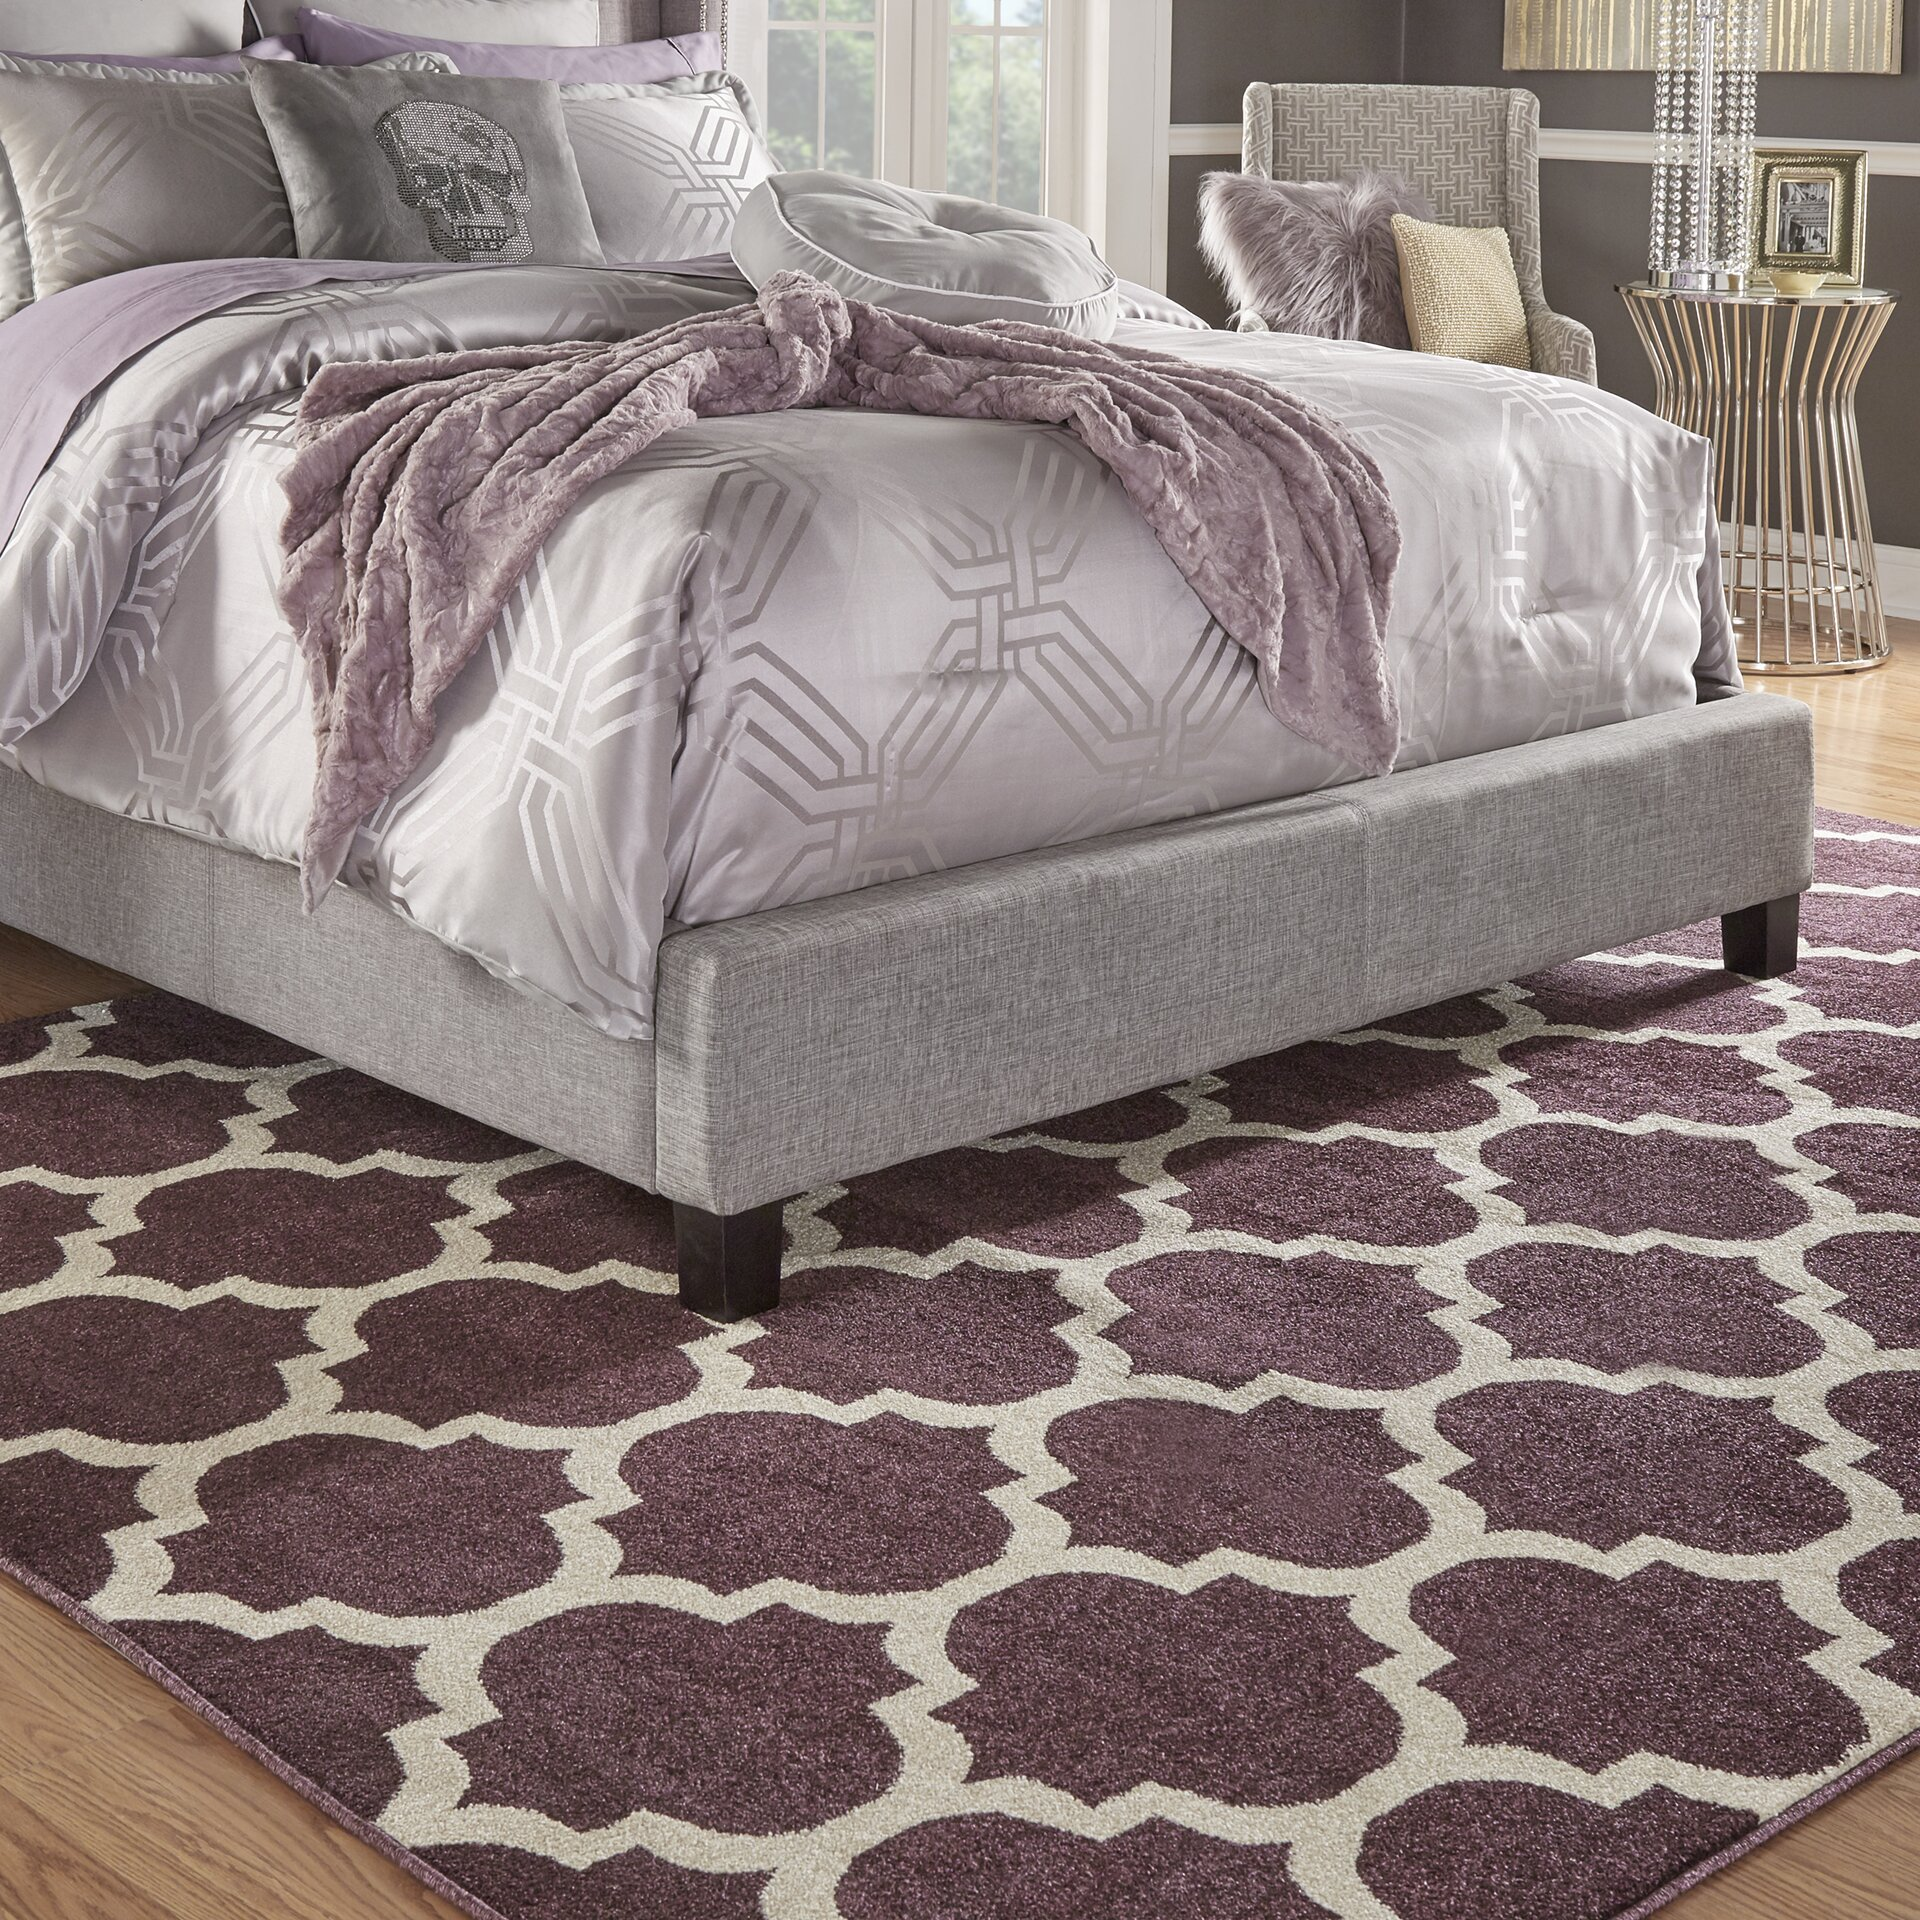 Purple Rug: Unique Loom Trellis Purple Area Rug & Reviews